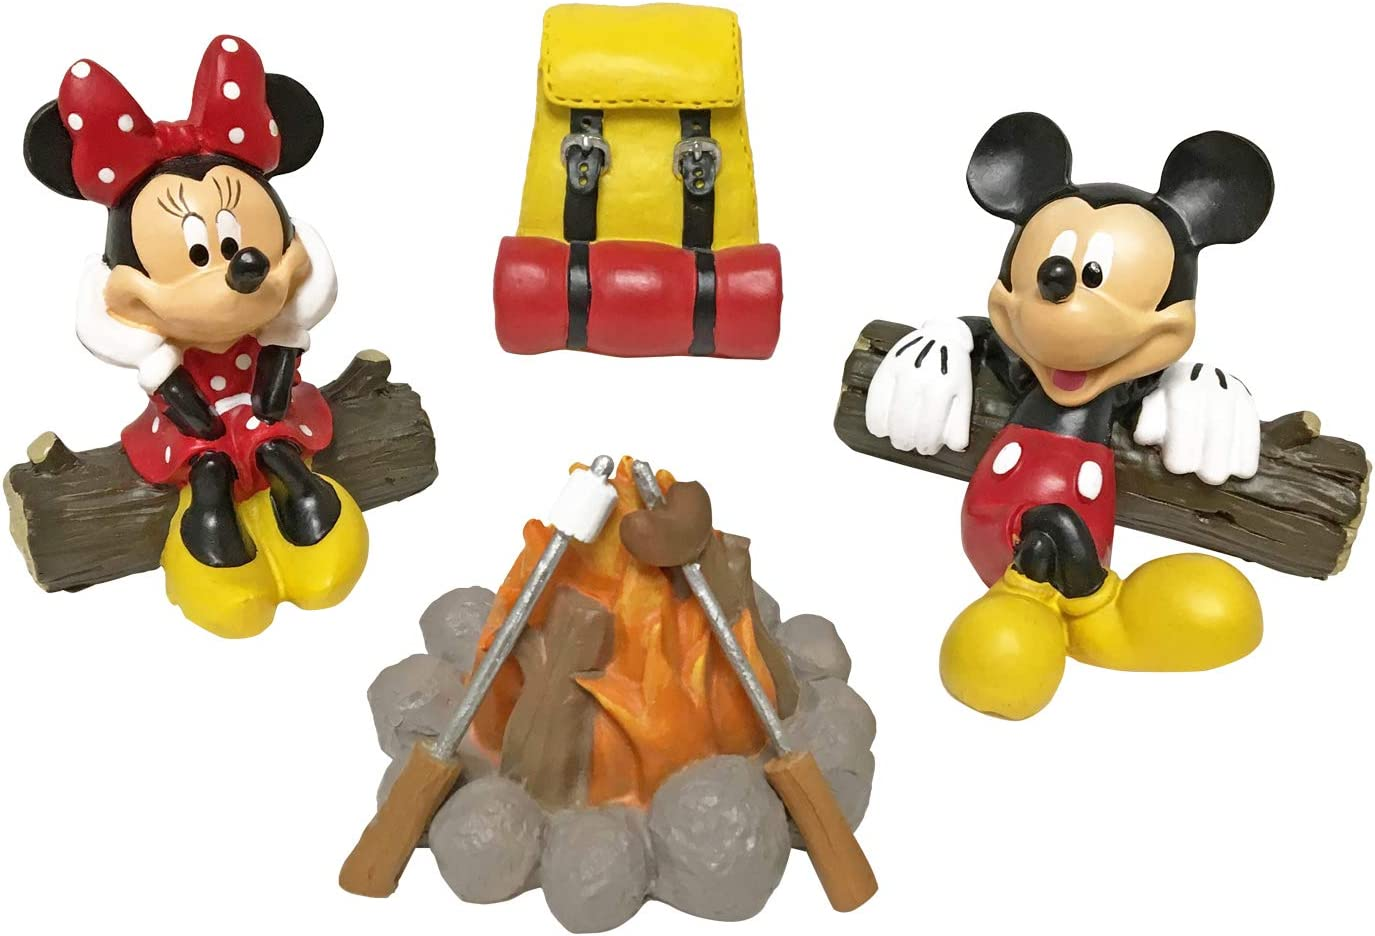 The Galway Company Classic Mickey and Minnie Fairy Garden, Hand Painted, 6 Piece, Official Disney Licensed Product.